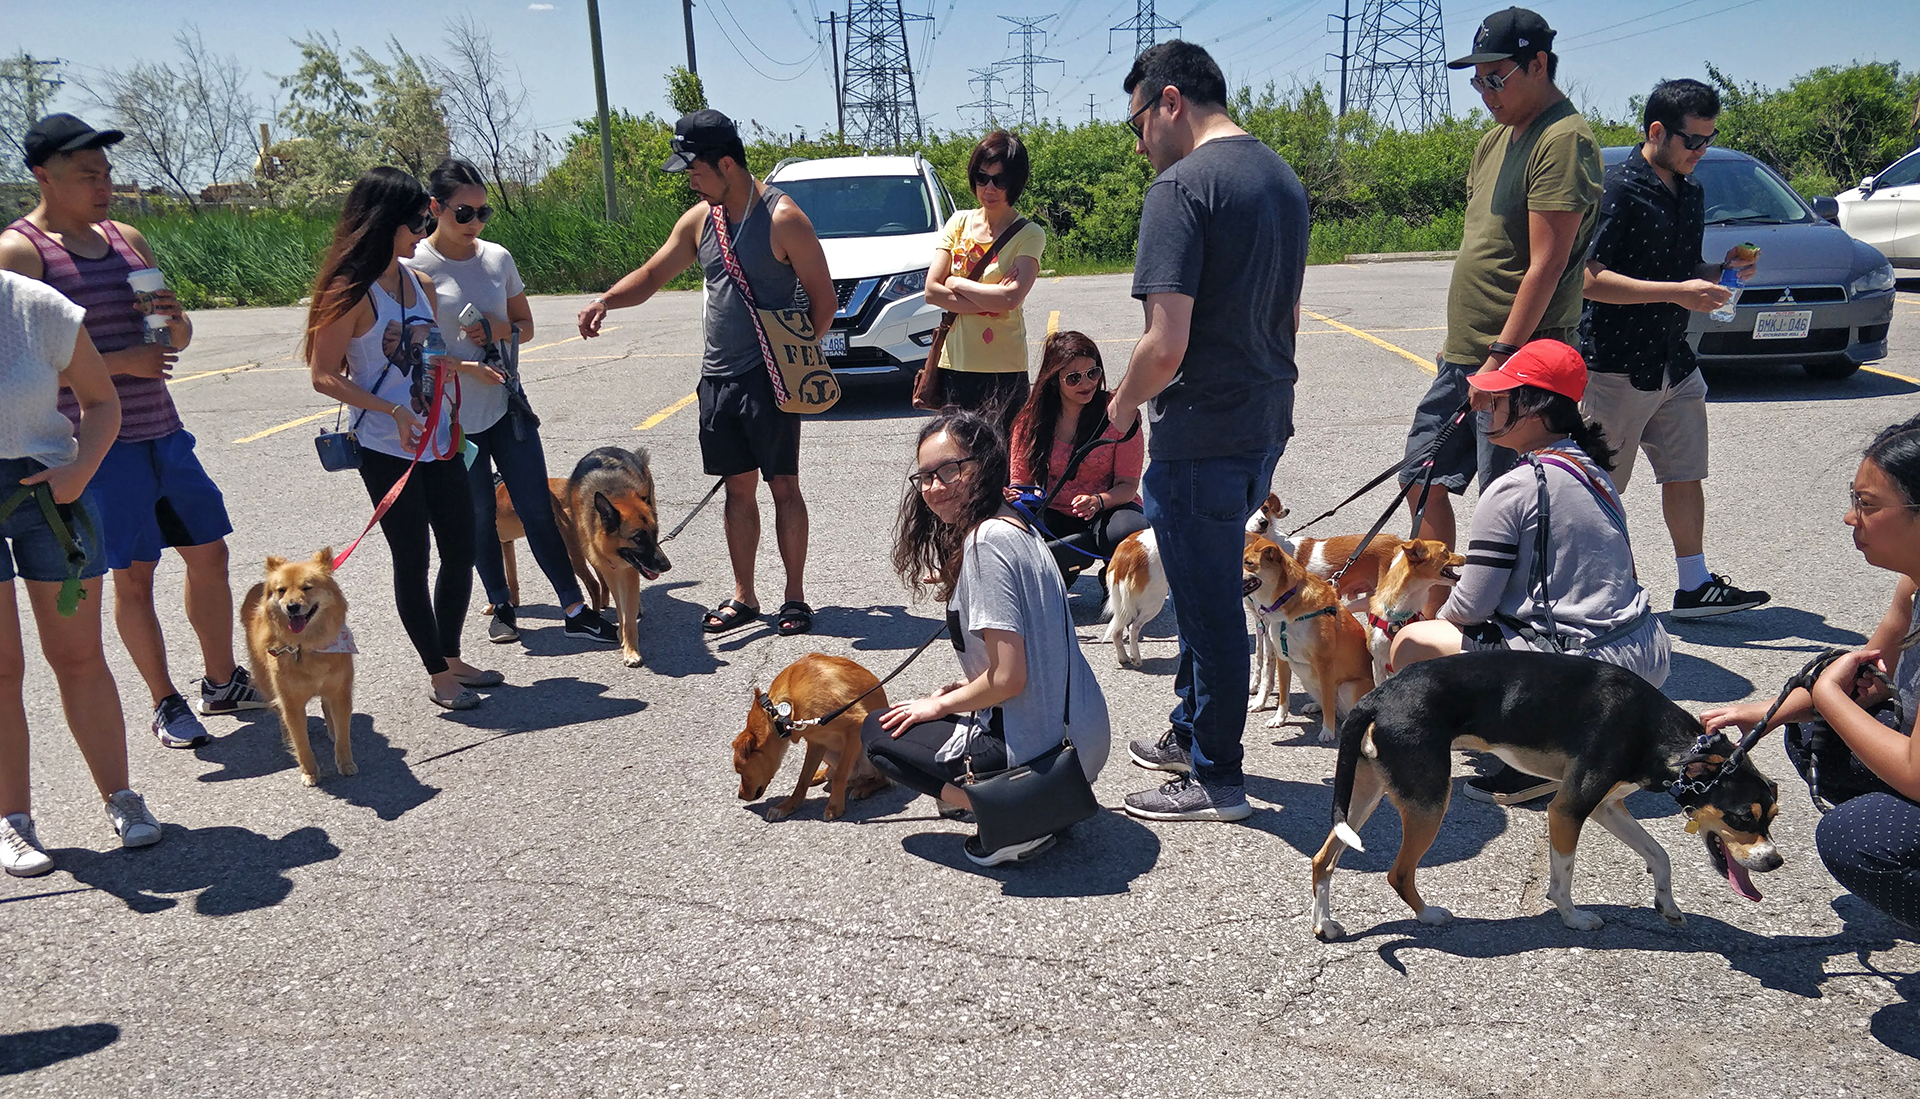 Arriving at the dog park. All the Dongs (including other FKD rescues like Chance and Ozzy, and Charlie's sibling Charlotte) are getting oriented around each other!